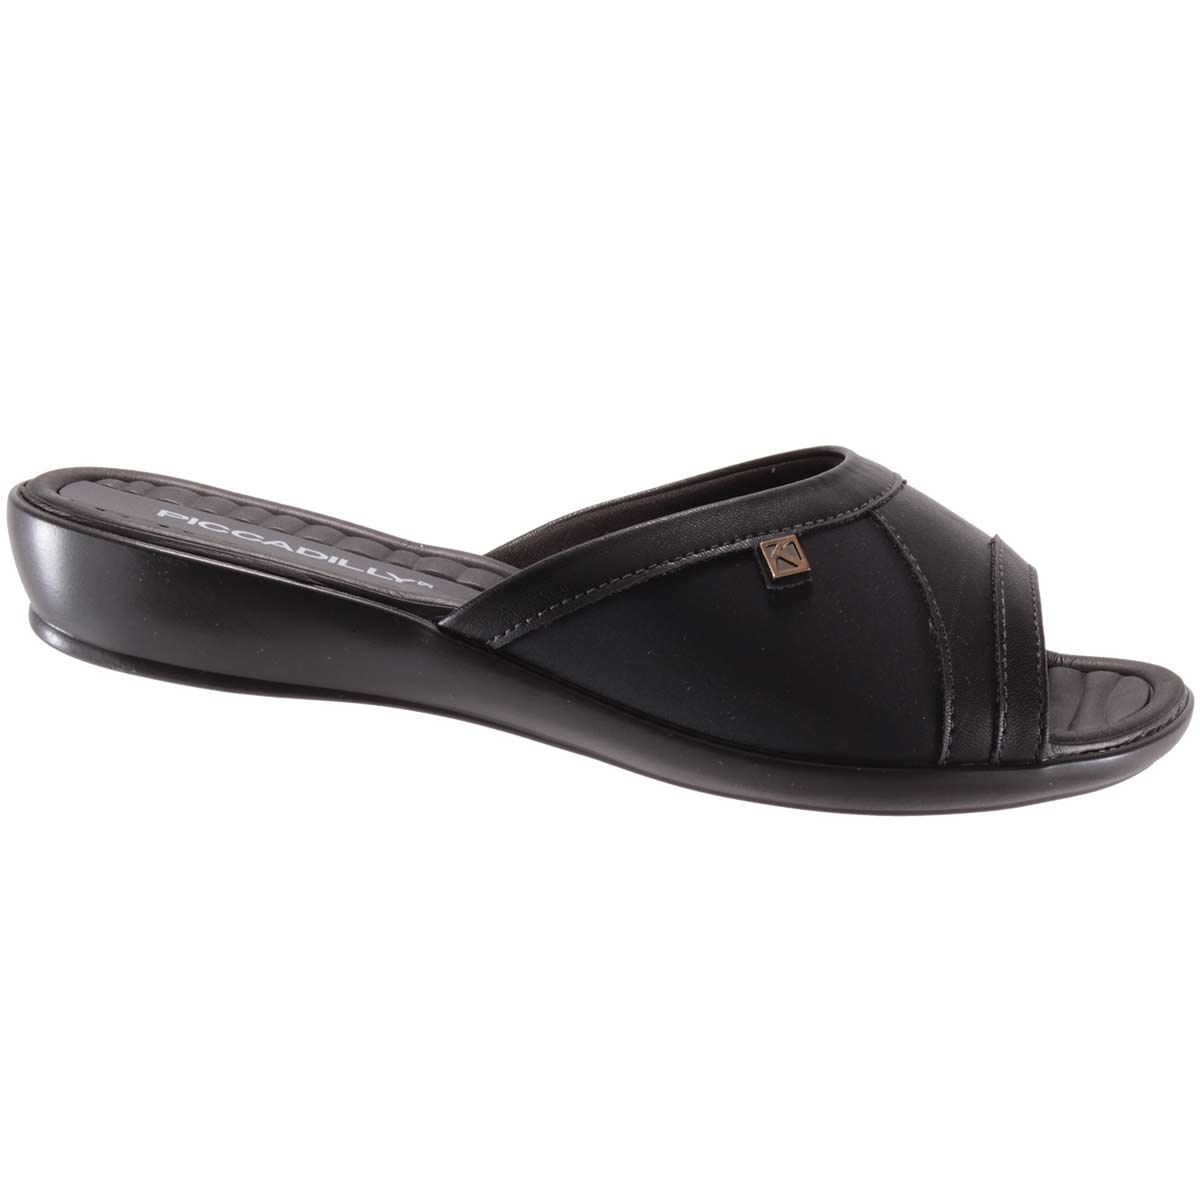 Chinelo Piccadilly Joanete Recortes Pingente 500159